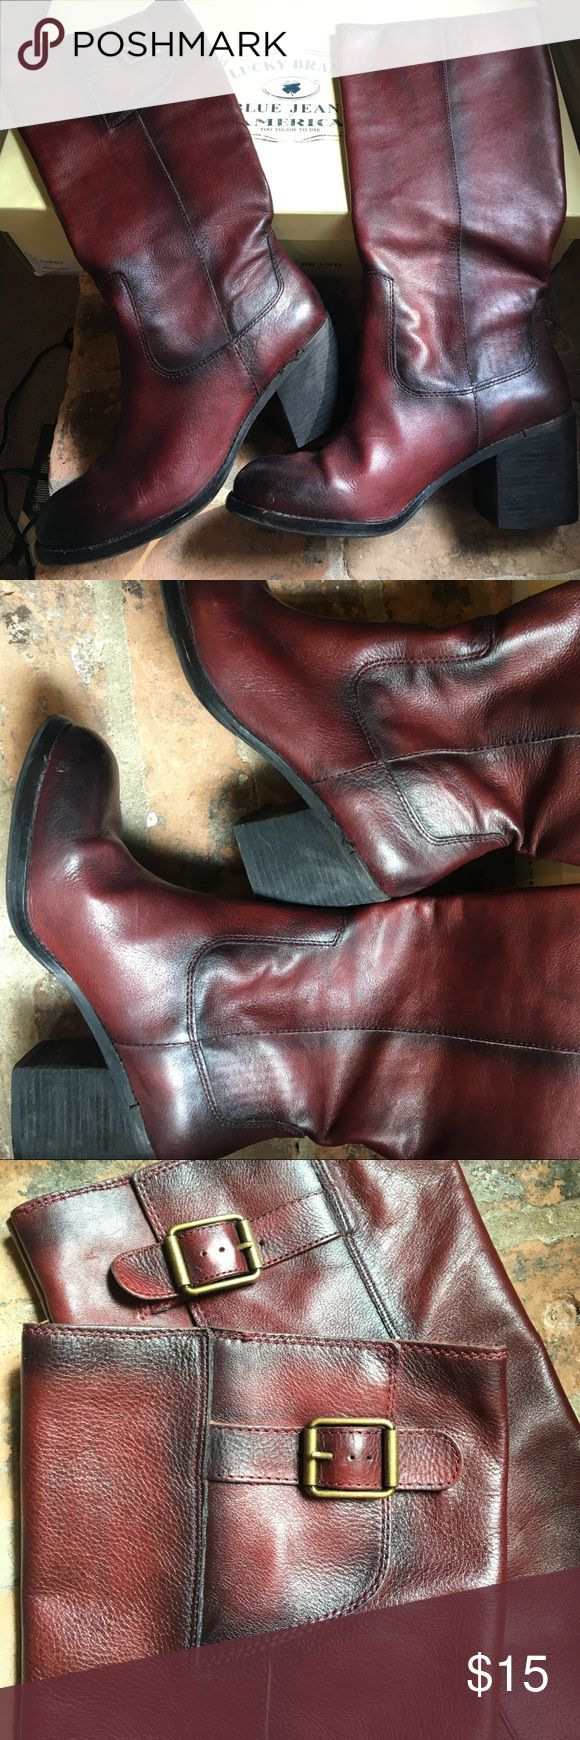 """Lucky Brand riding boots Great condition distressed leather riding boots from Dillard's. the color is kind of a burgandy/wine. 3"""" heel. Lucky Brand Shoes Winter & Rain Boots"""